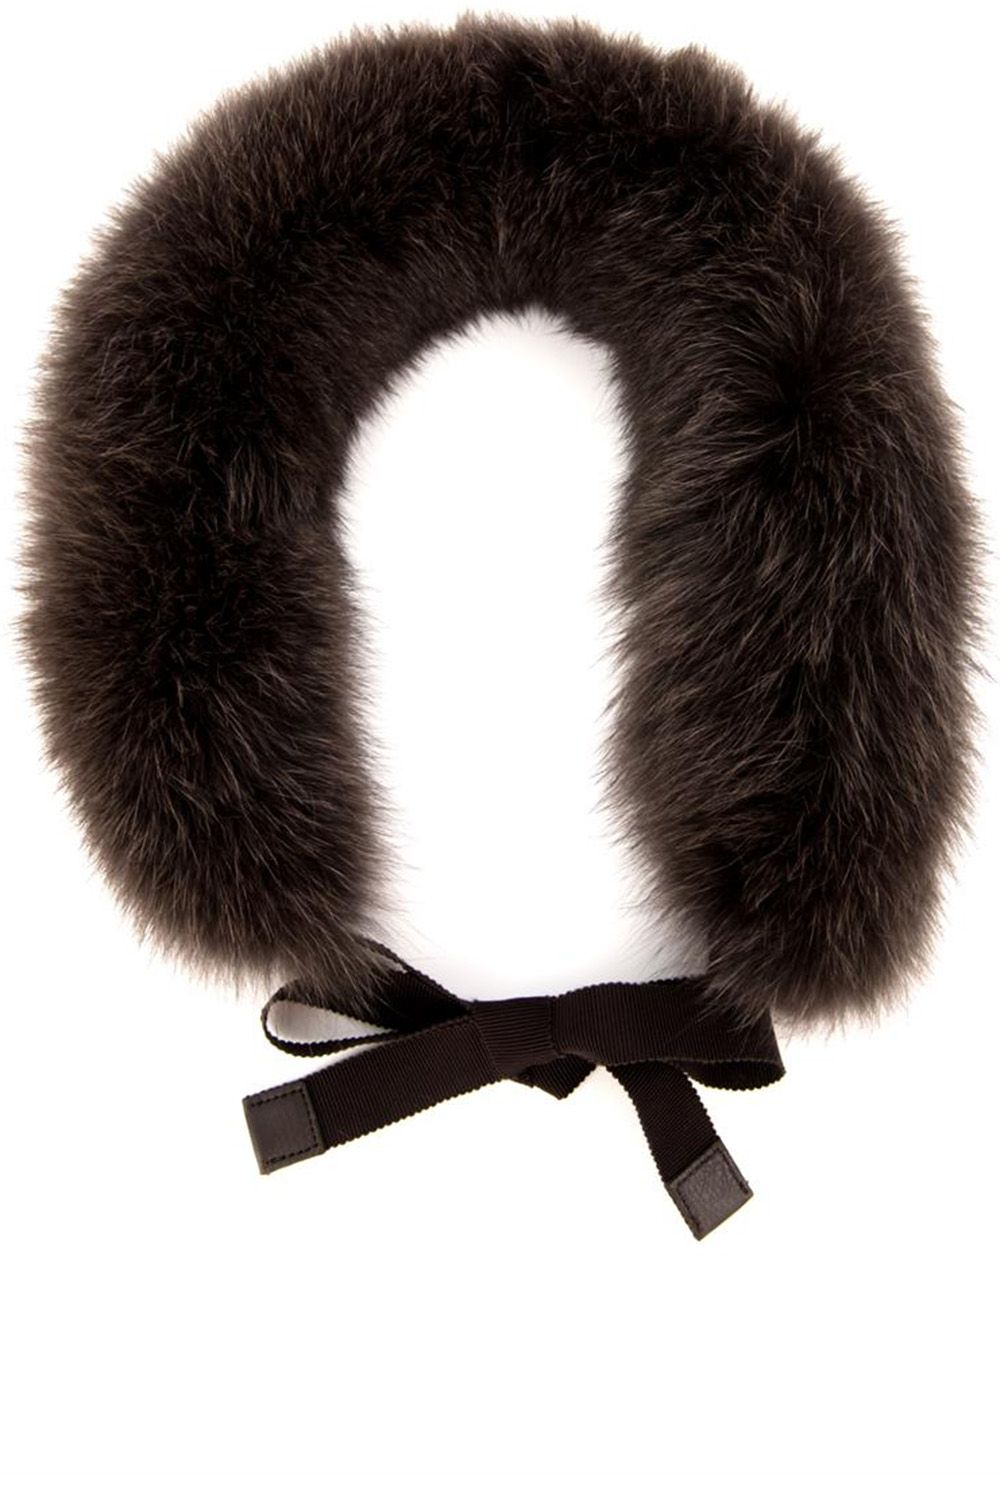 "<strong>S Max Mara</strong> fur scarf, $541, <a href=""http://www.matchesfashion.com/product/209327"">matchesfashion.com. </a>"